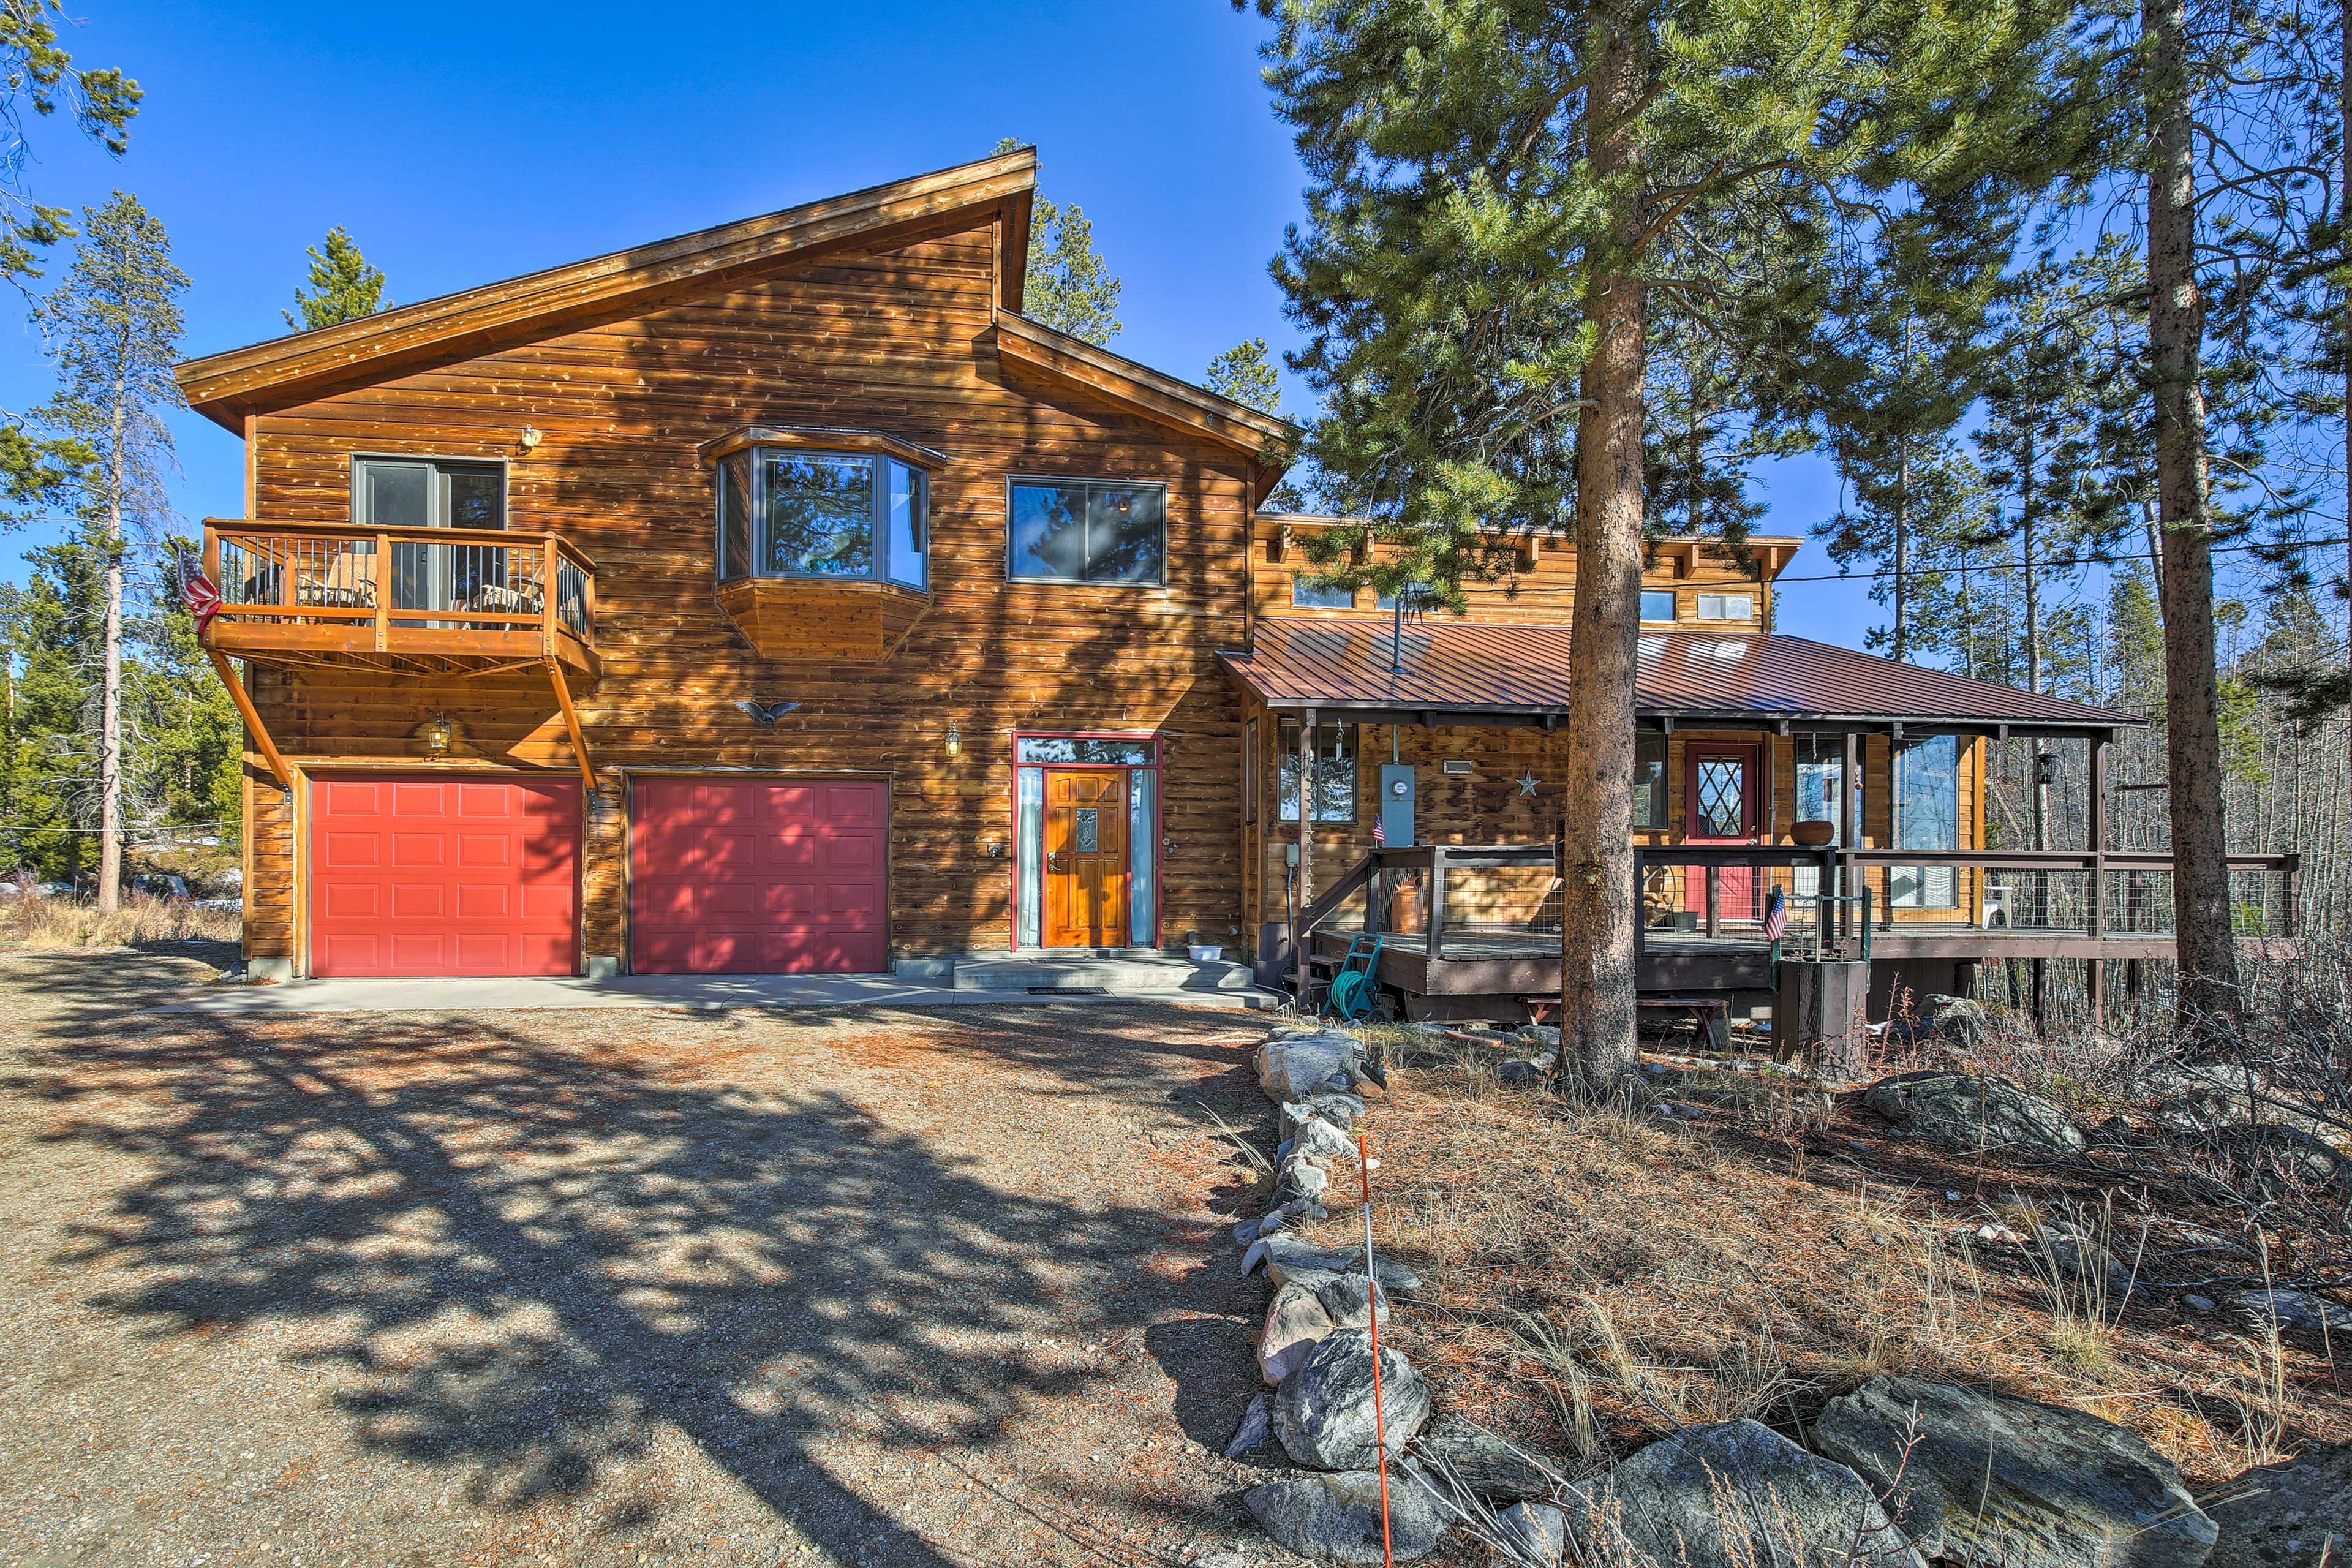 Situated on a 1-acre lot surrounded by pine trees, this home is an outdoor oasis